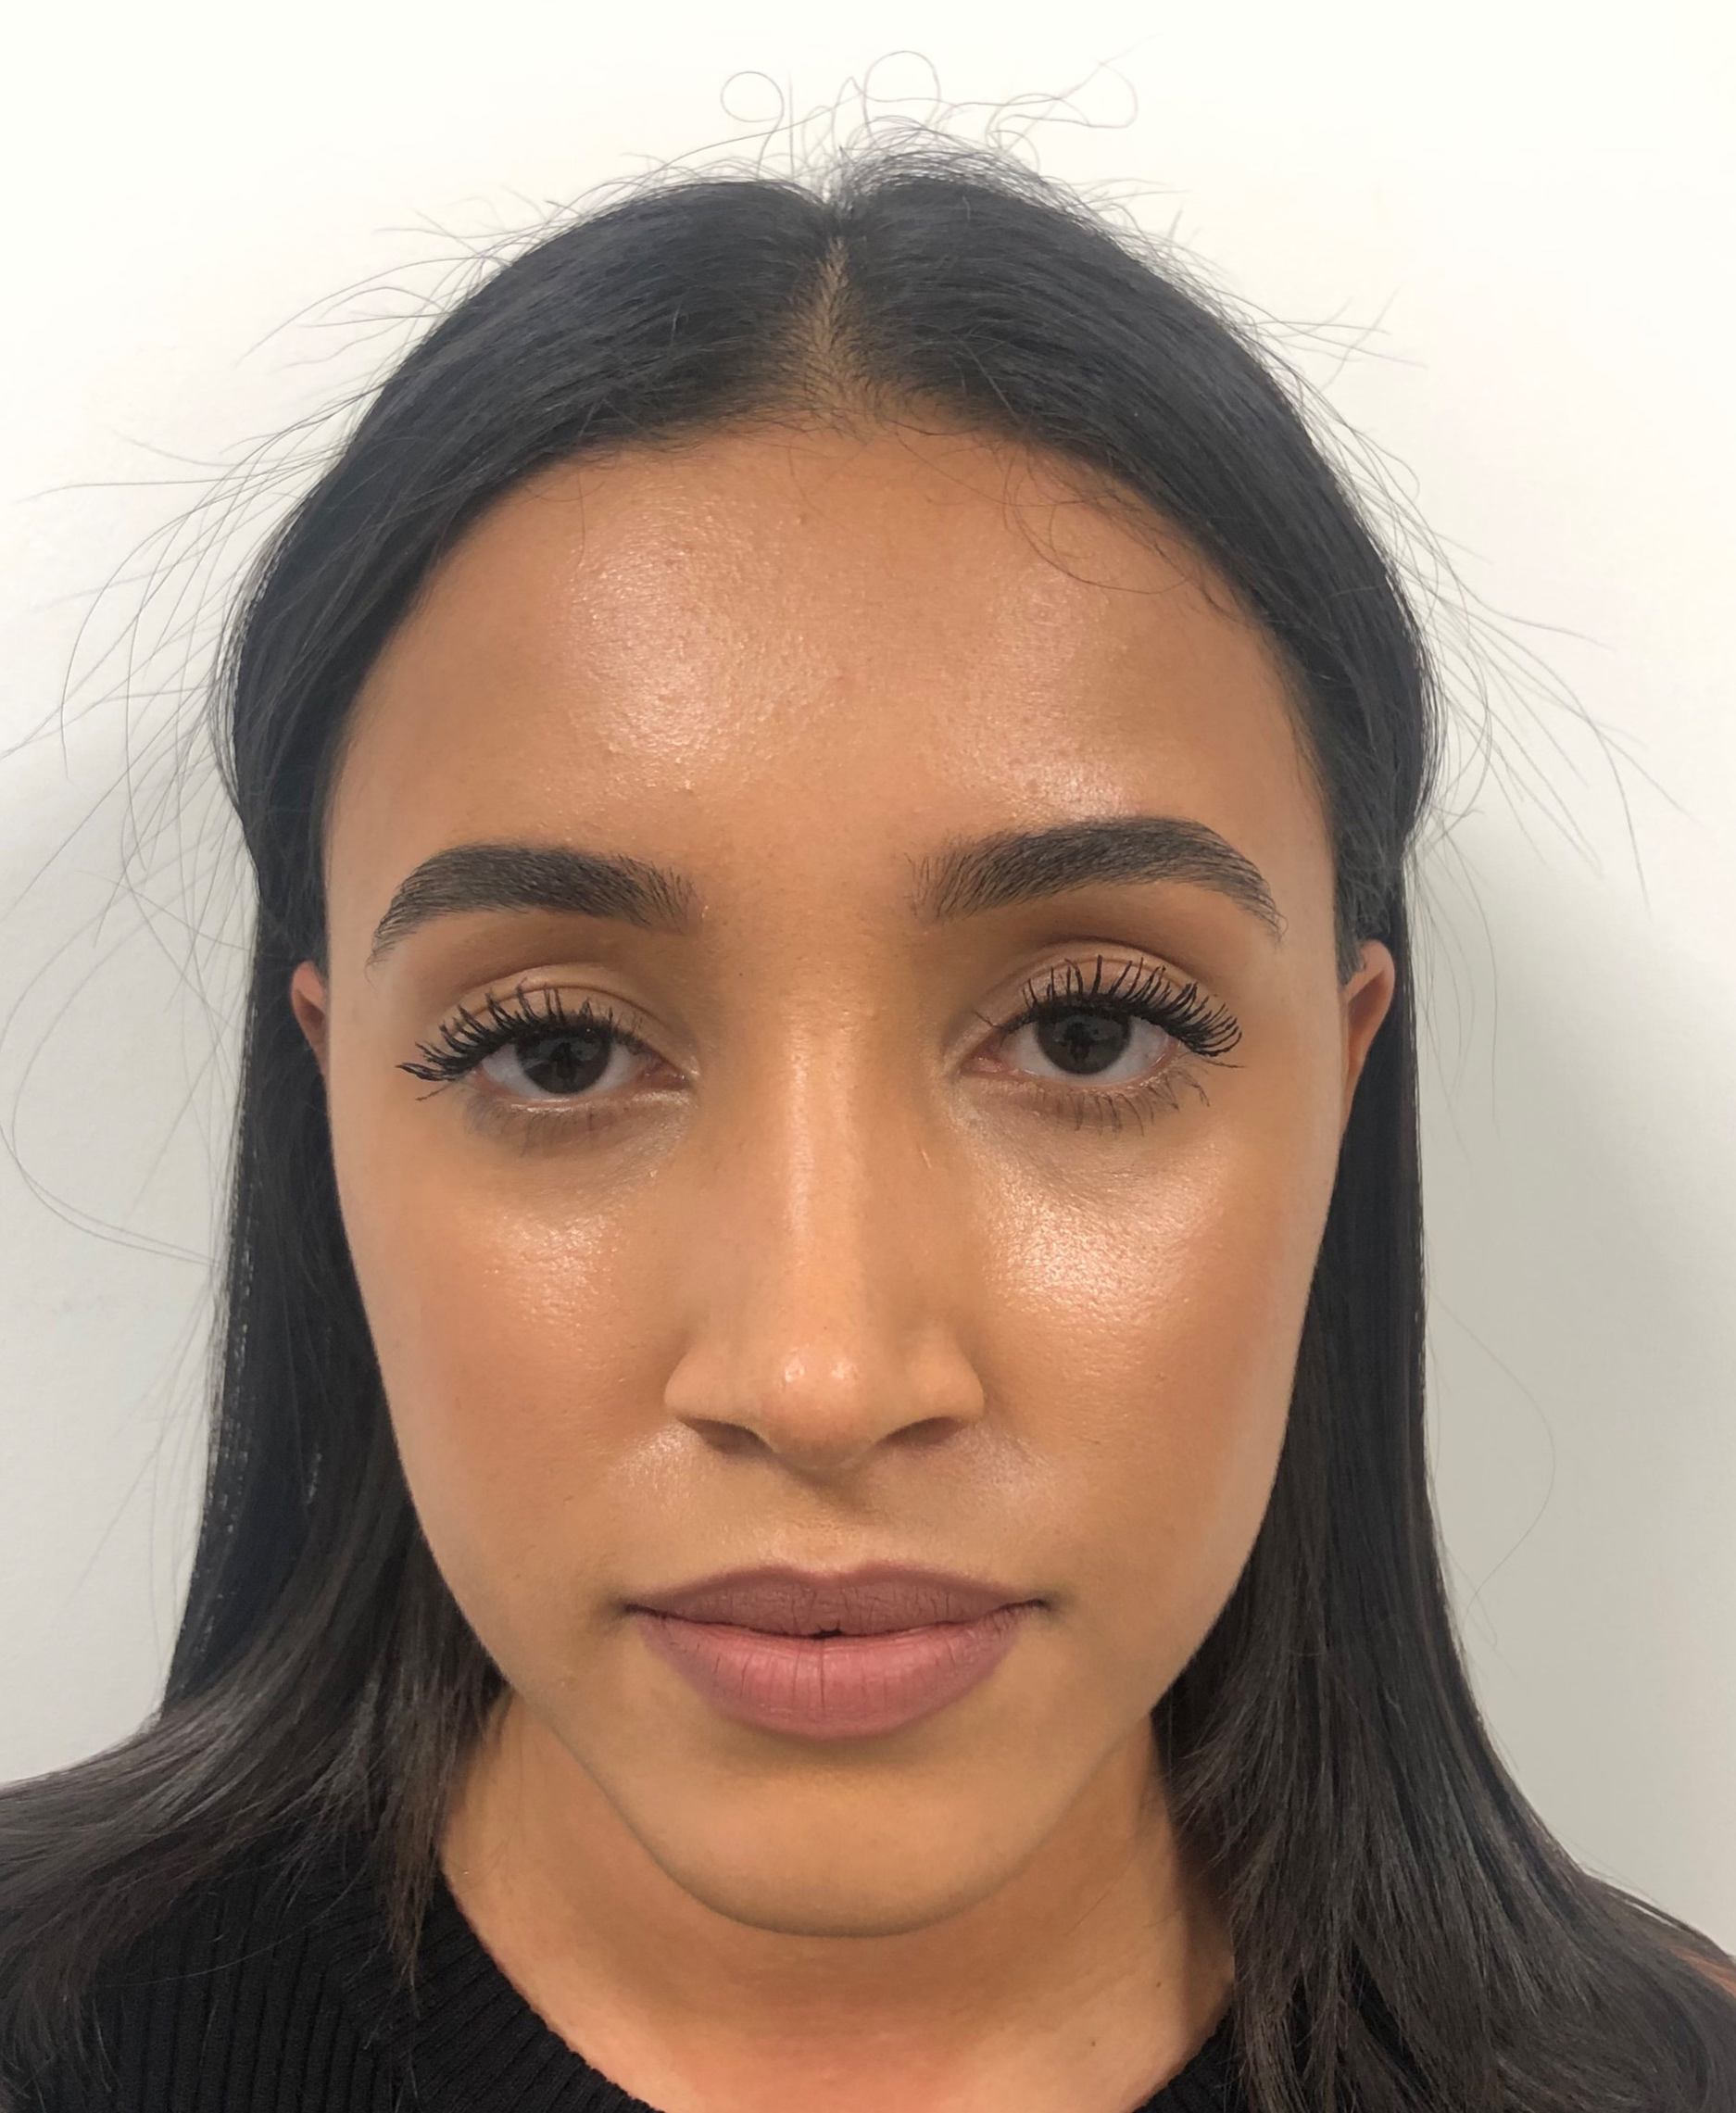 6 weeks post open rhinoplasty